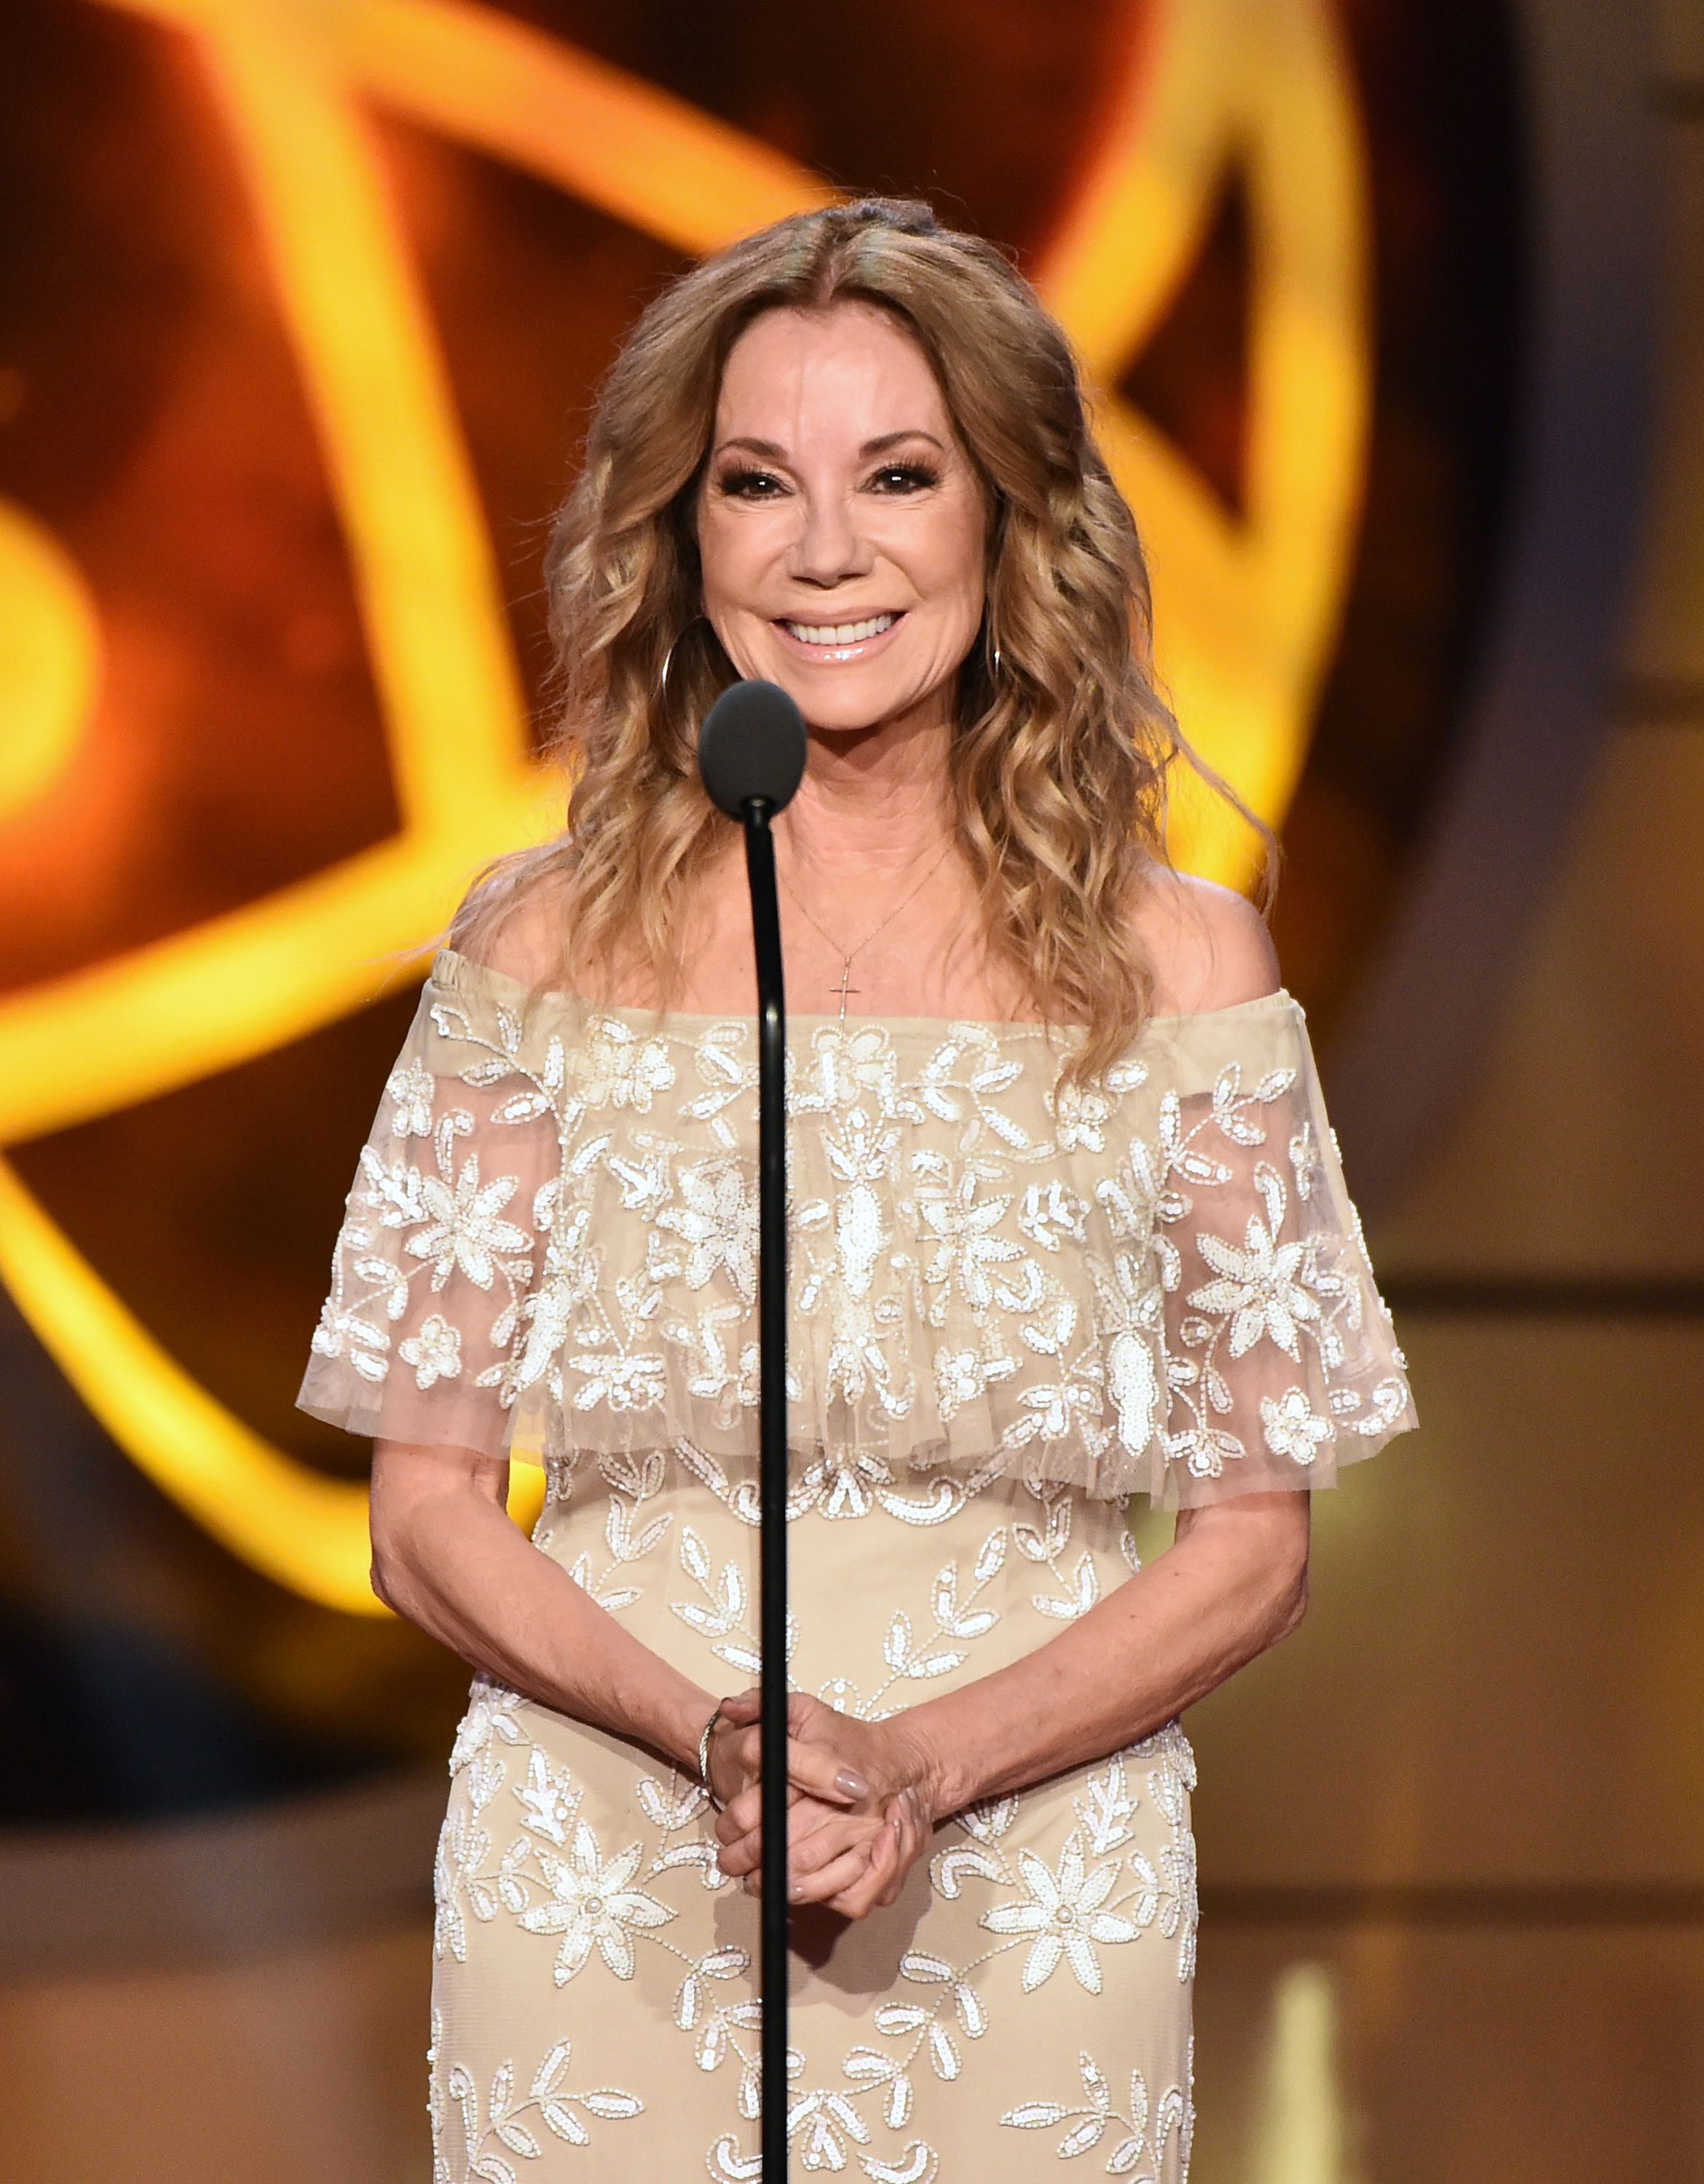 Kathie Lee Gifford speaks at the 46th annual Daytime Emmy Awards at Pasadena Civic Center on May 05, 2019 | Photo: Getty Images